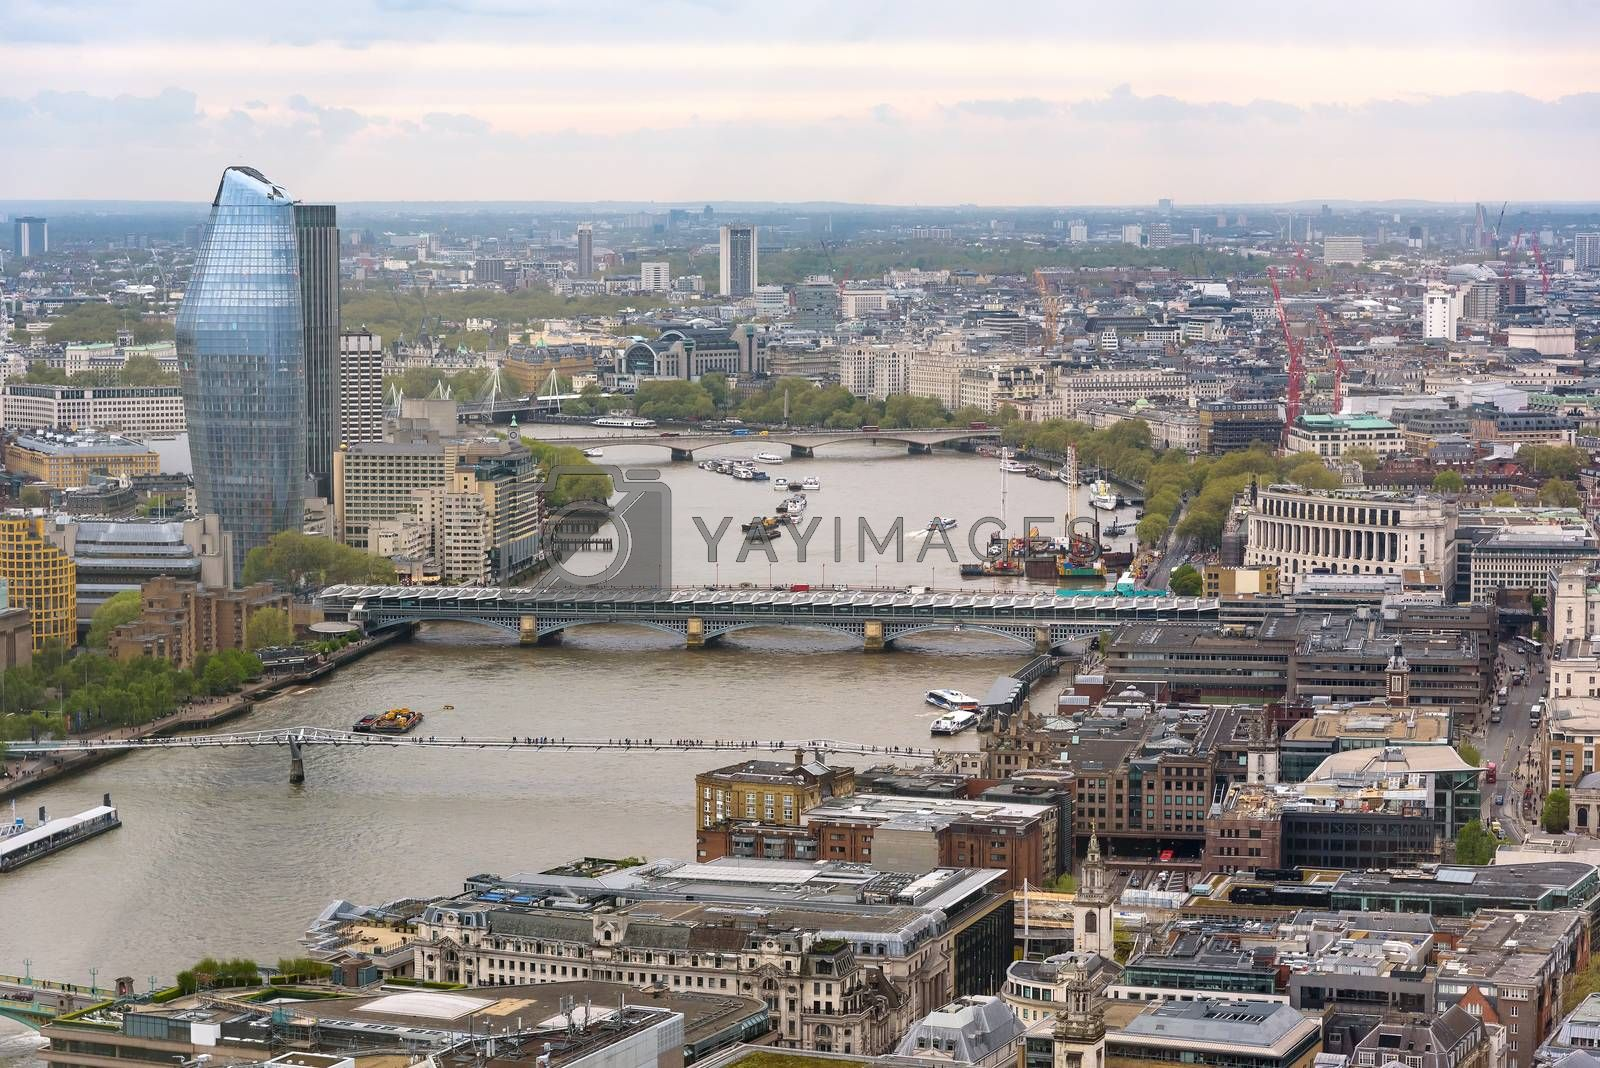 Aerial view of Thames river in London on a cloudy day